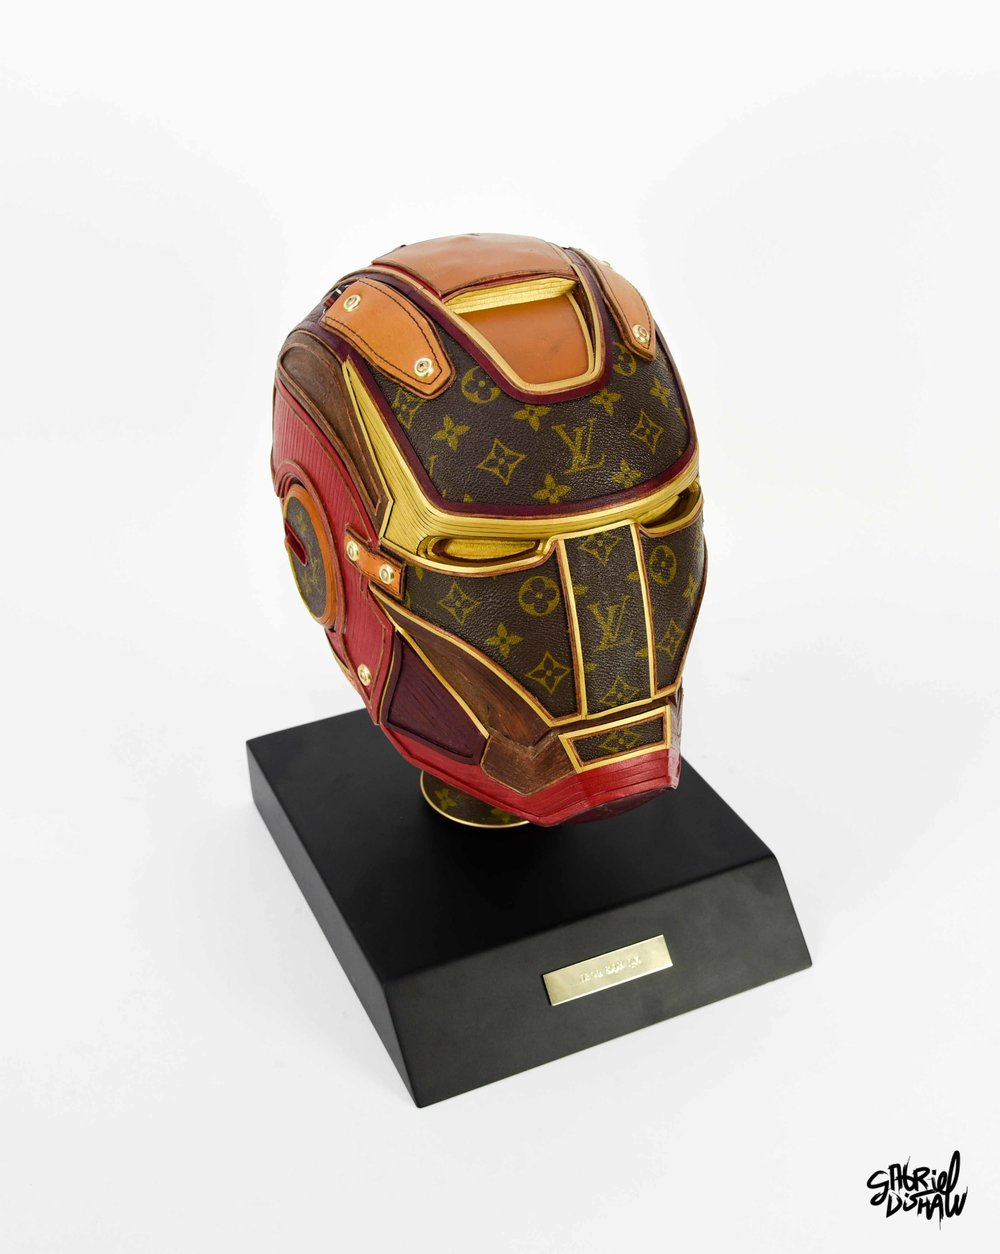 Gabriel Dishaw Iron Man LV-4089.jpg